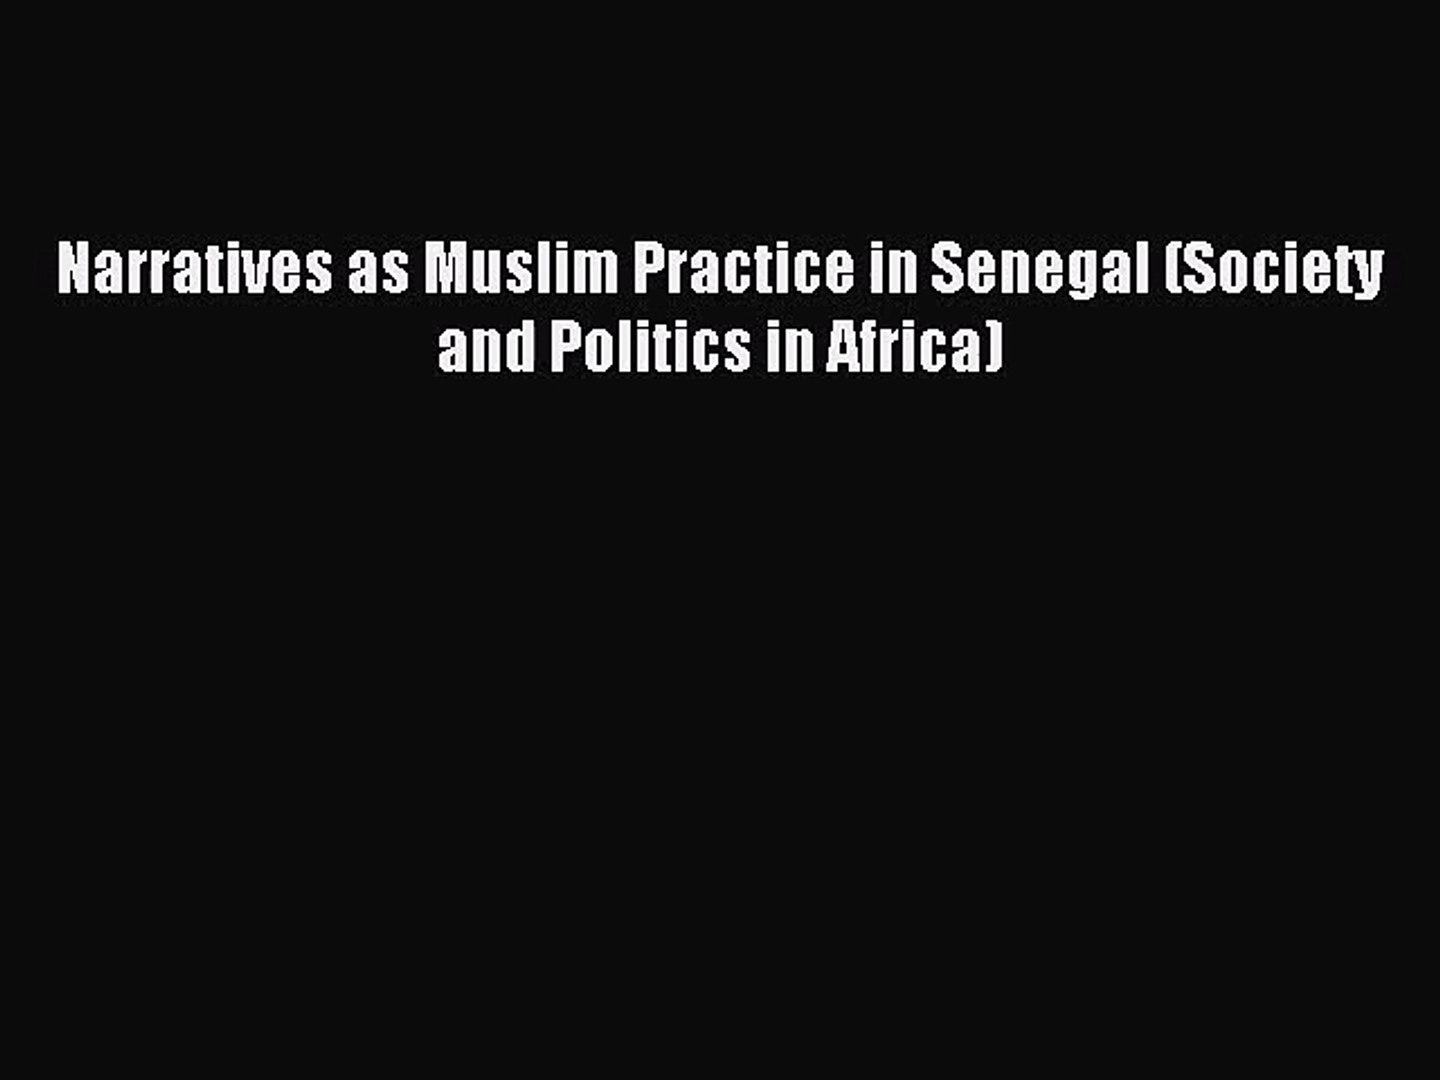 [PDF Download] Narratives as Muslim Practice in Senegal (Society and Politics in Africa) [Read]